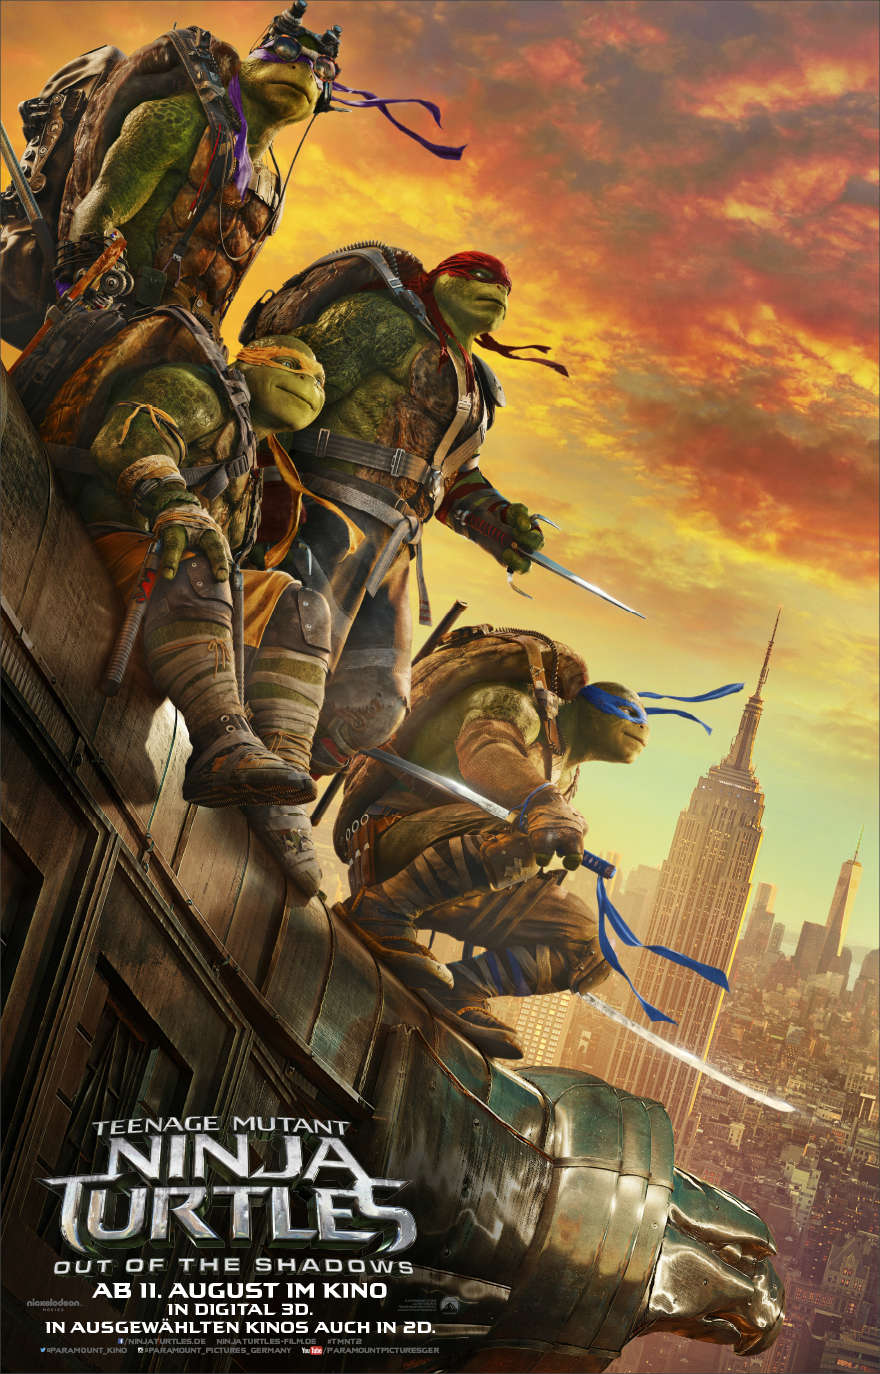 Teenage-Mutant-Ninja-Turtels-Out-of-the-shadows-3D-deutsches-poster